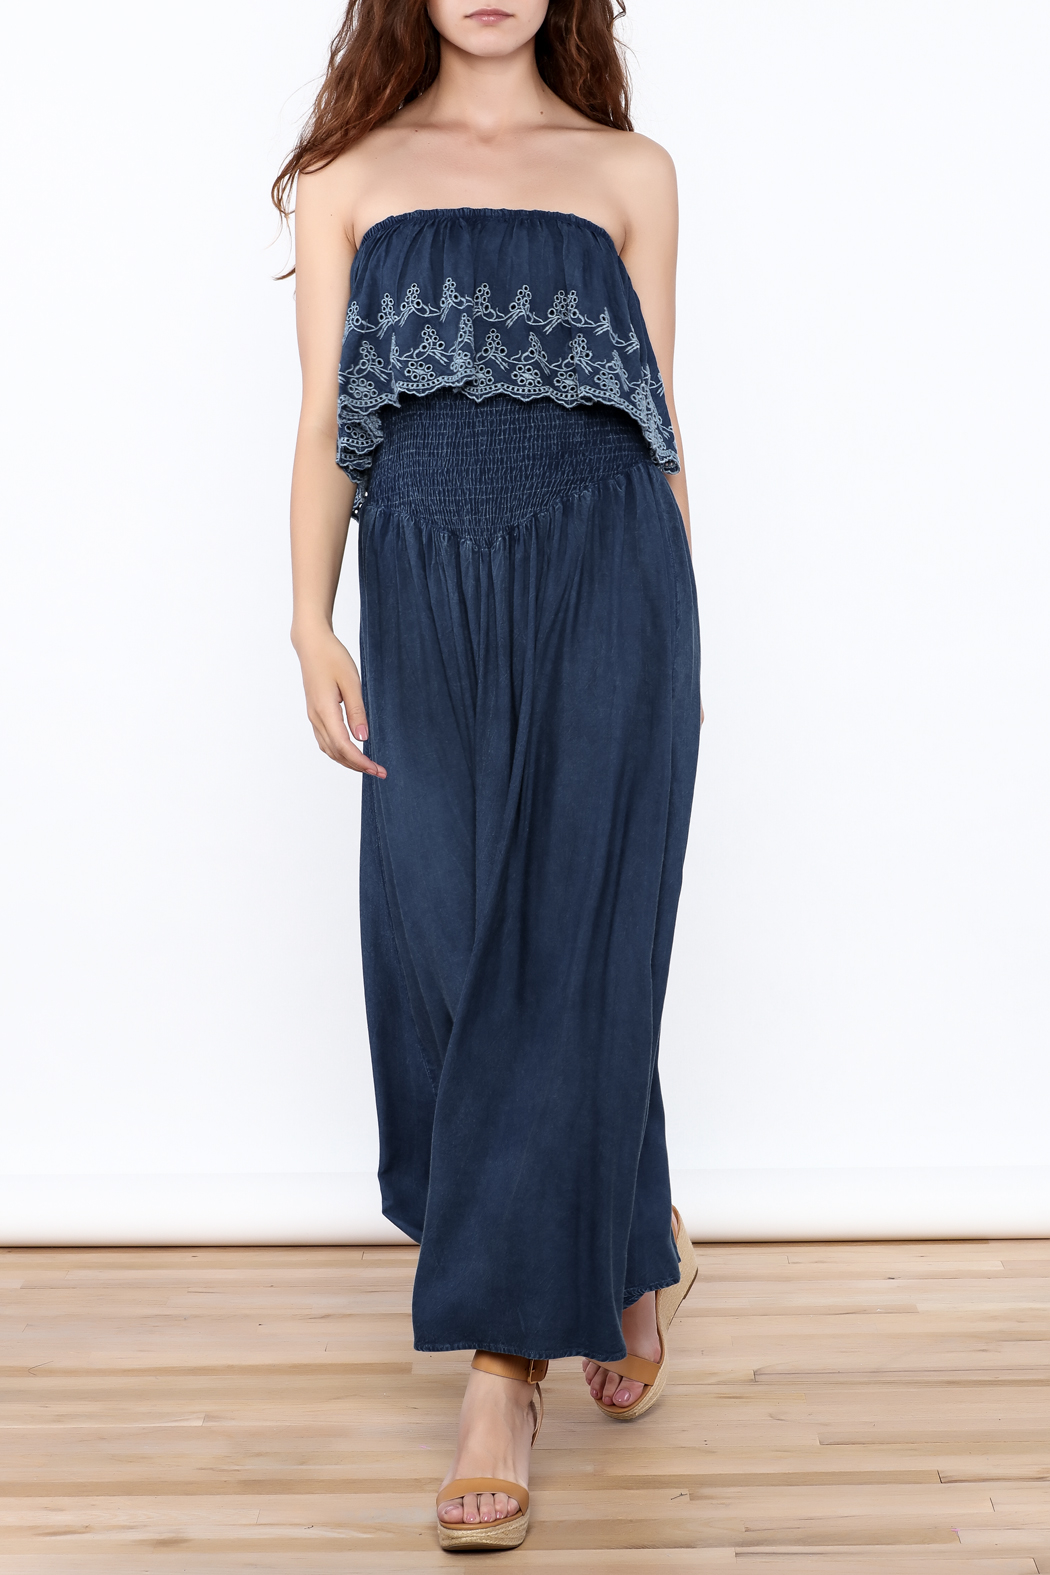 Elan Denim Maxi Dress - Main Image